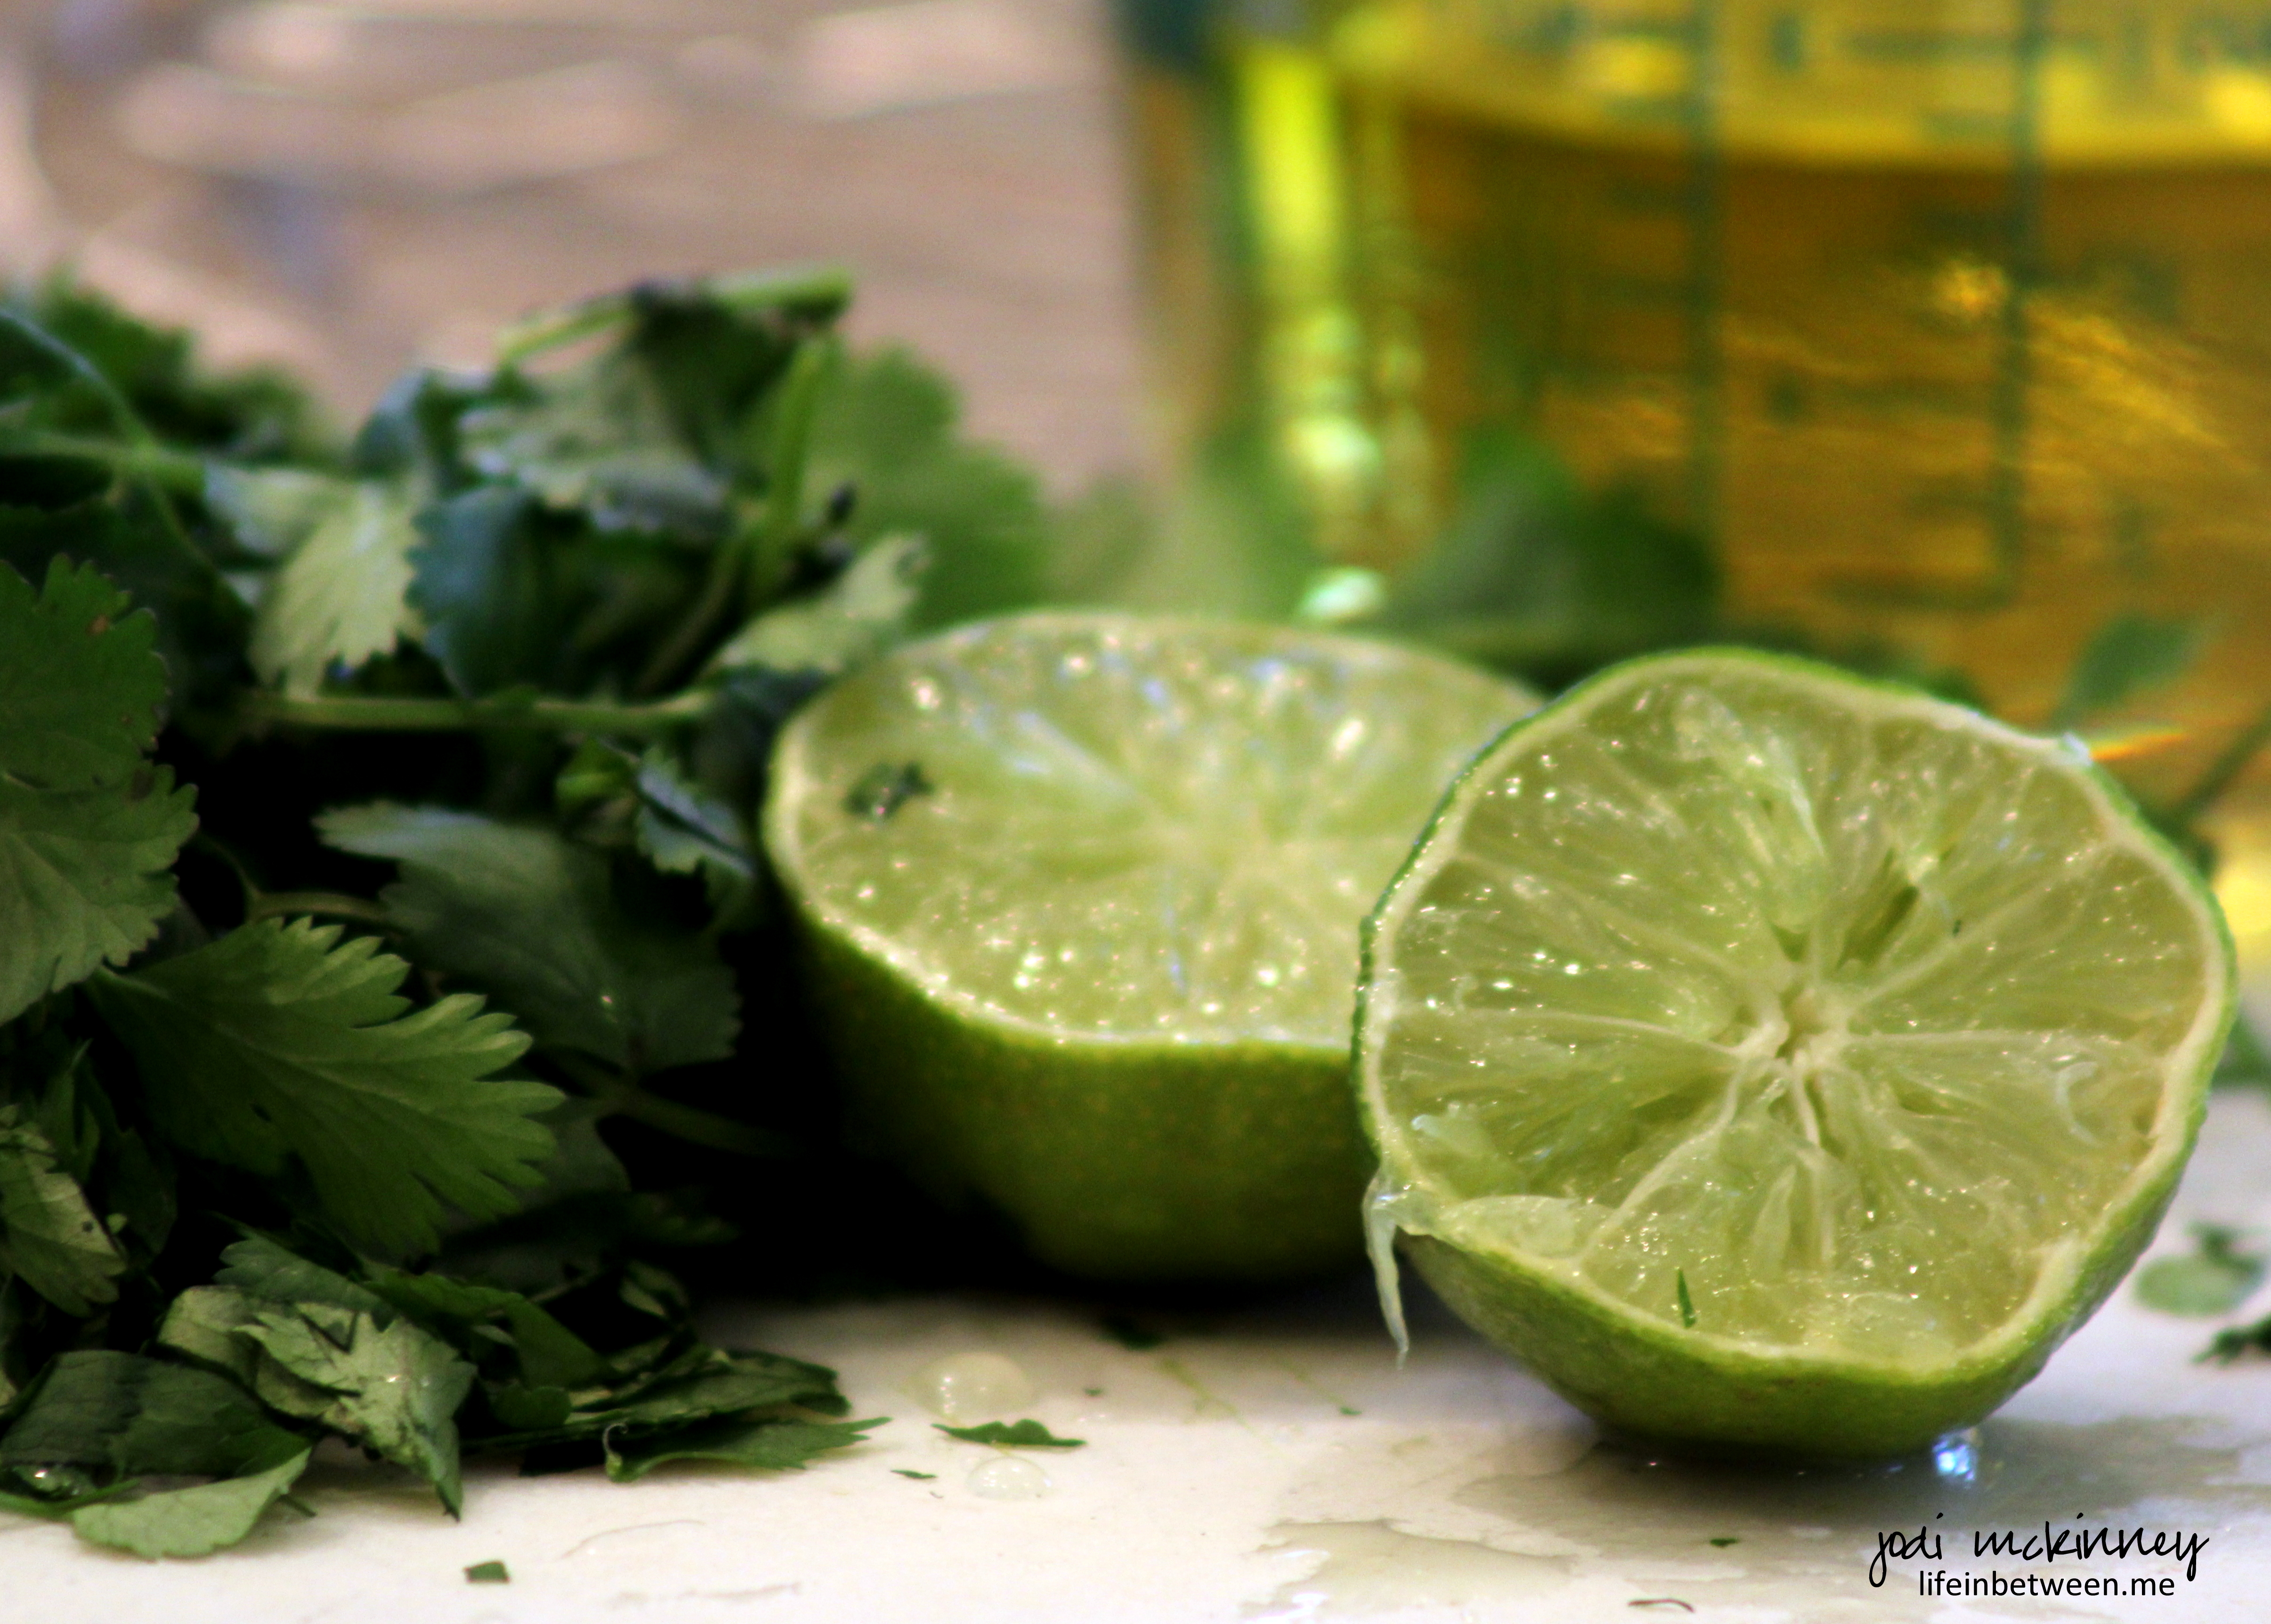 started with a fresh lime and cilantro marinade…